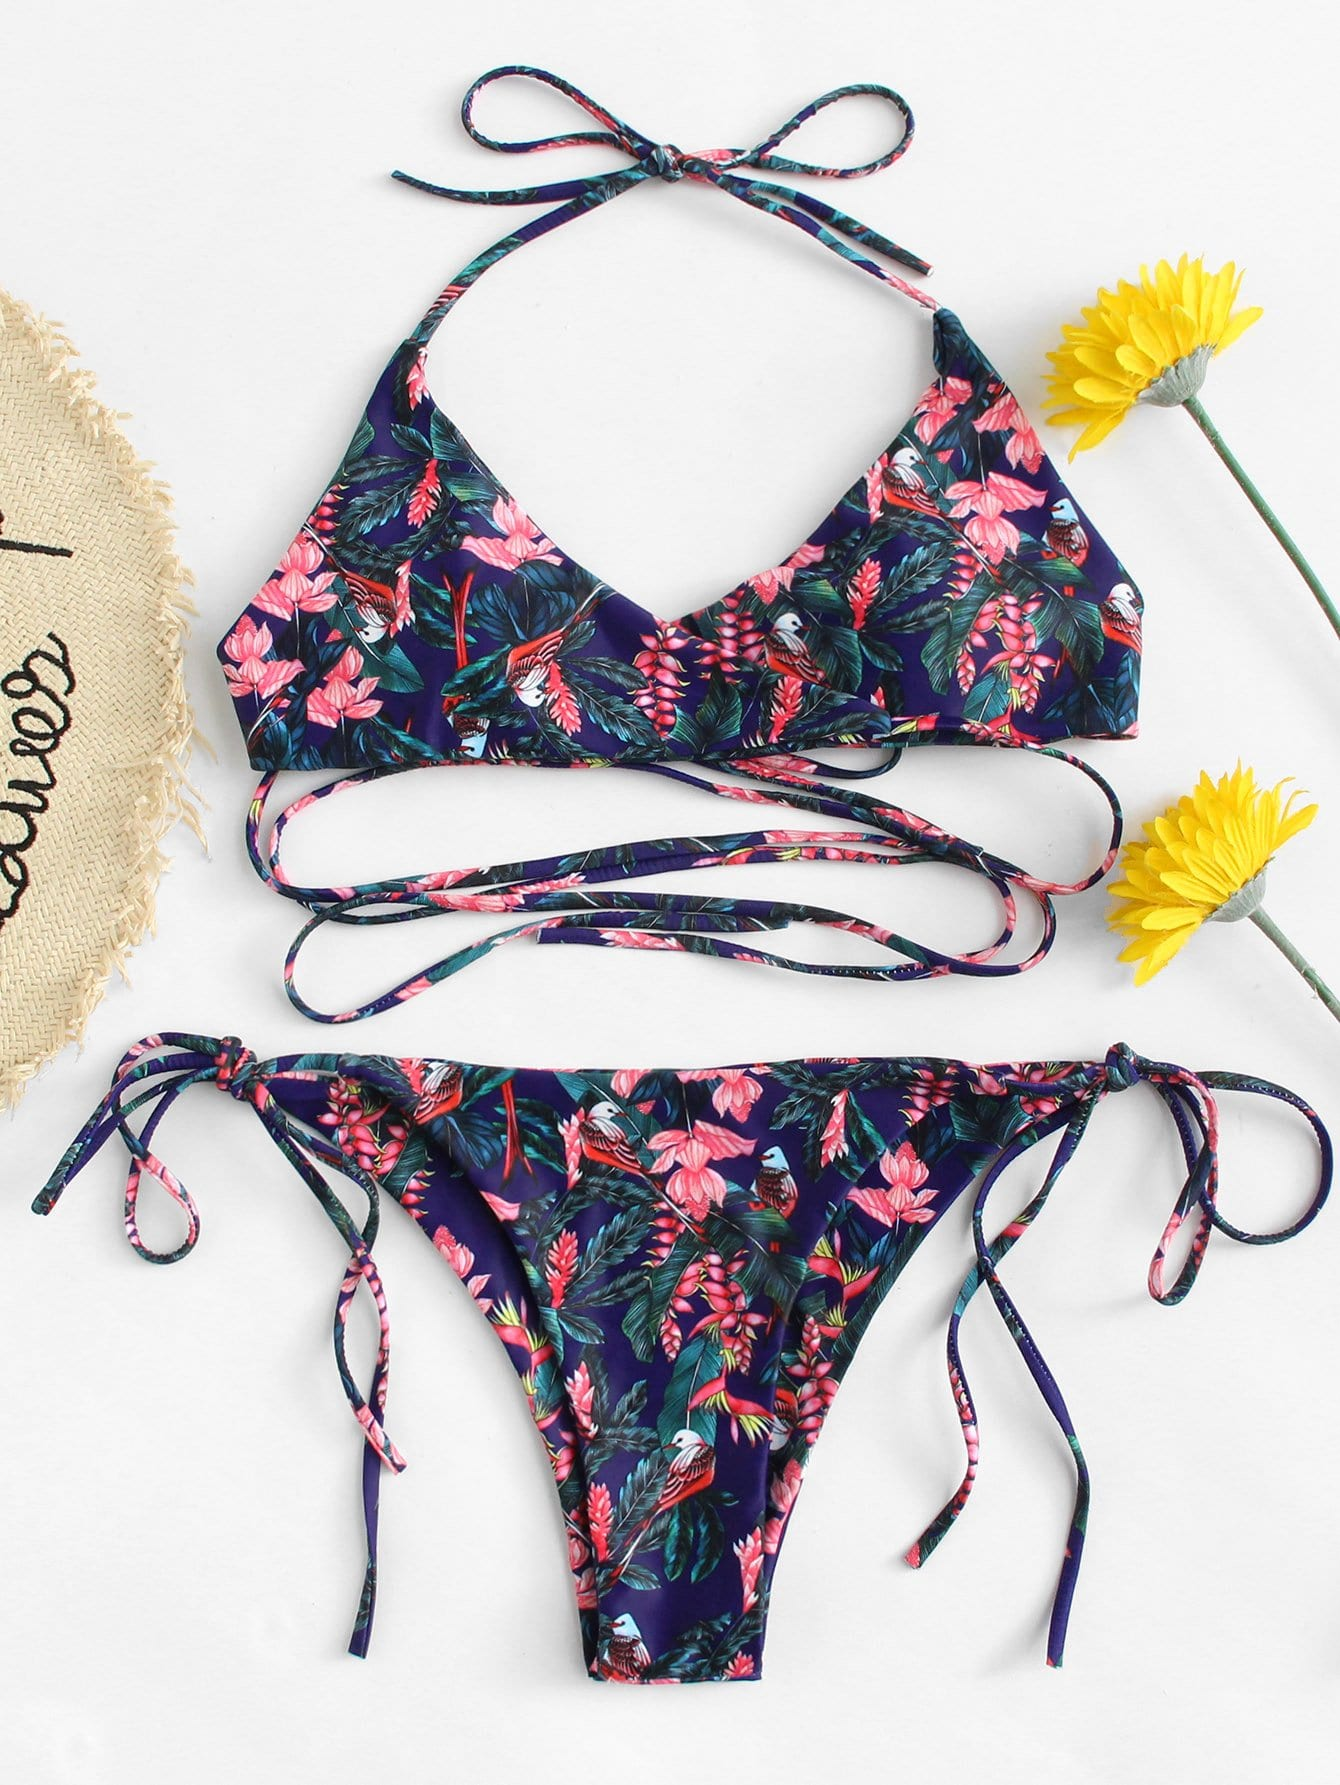 Tropical Print Cross Wrap Bikini Set tropical floral wrap bikini set